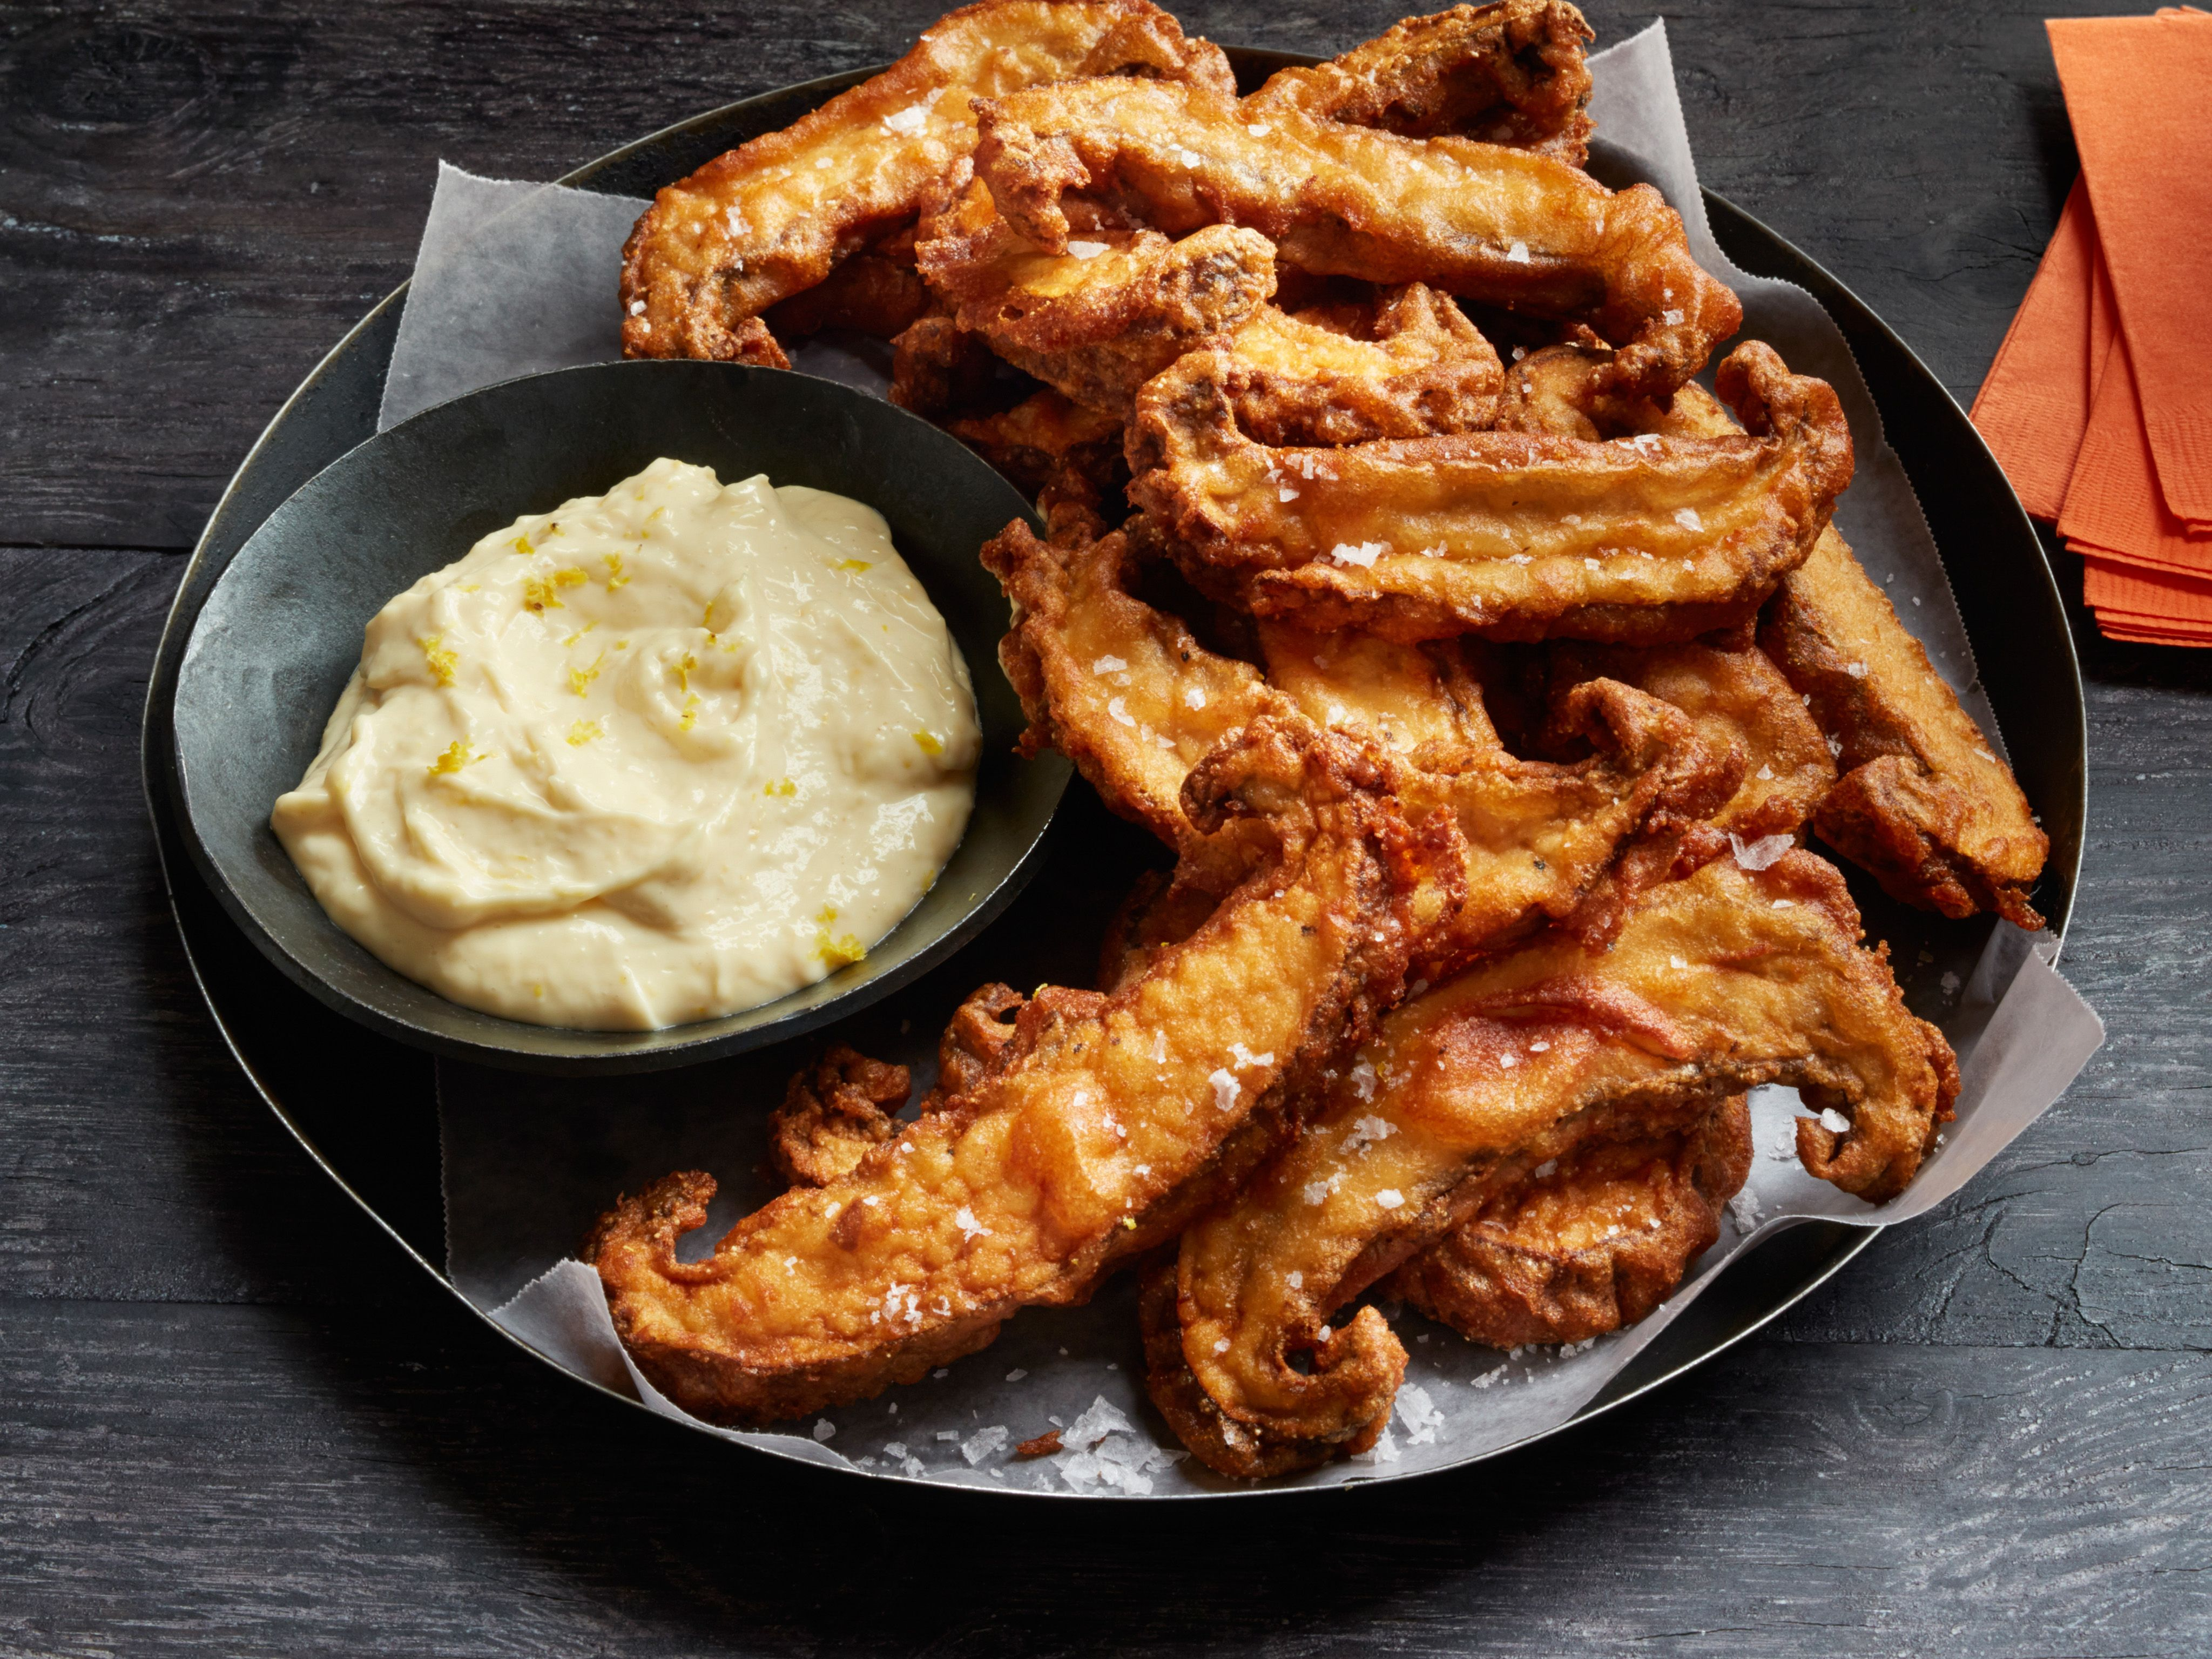 Beer battered mushrooms with garlic aioli recipe garlic aioli beer battered mushrooms with garlic aioli forumfinder Image collections